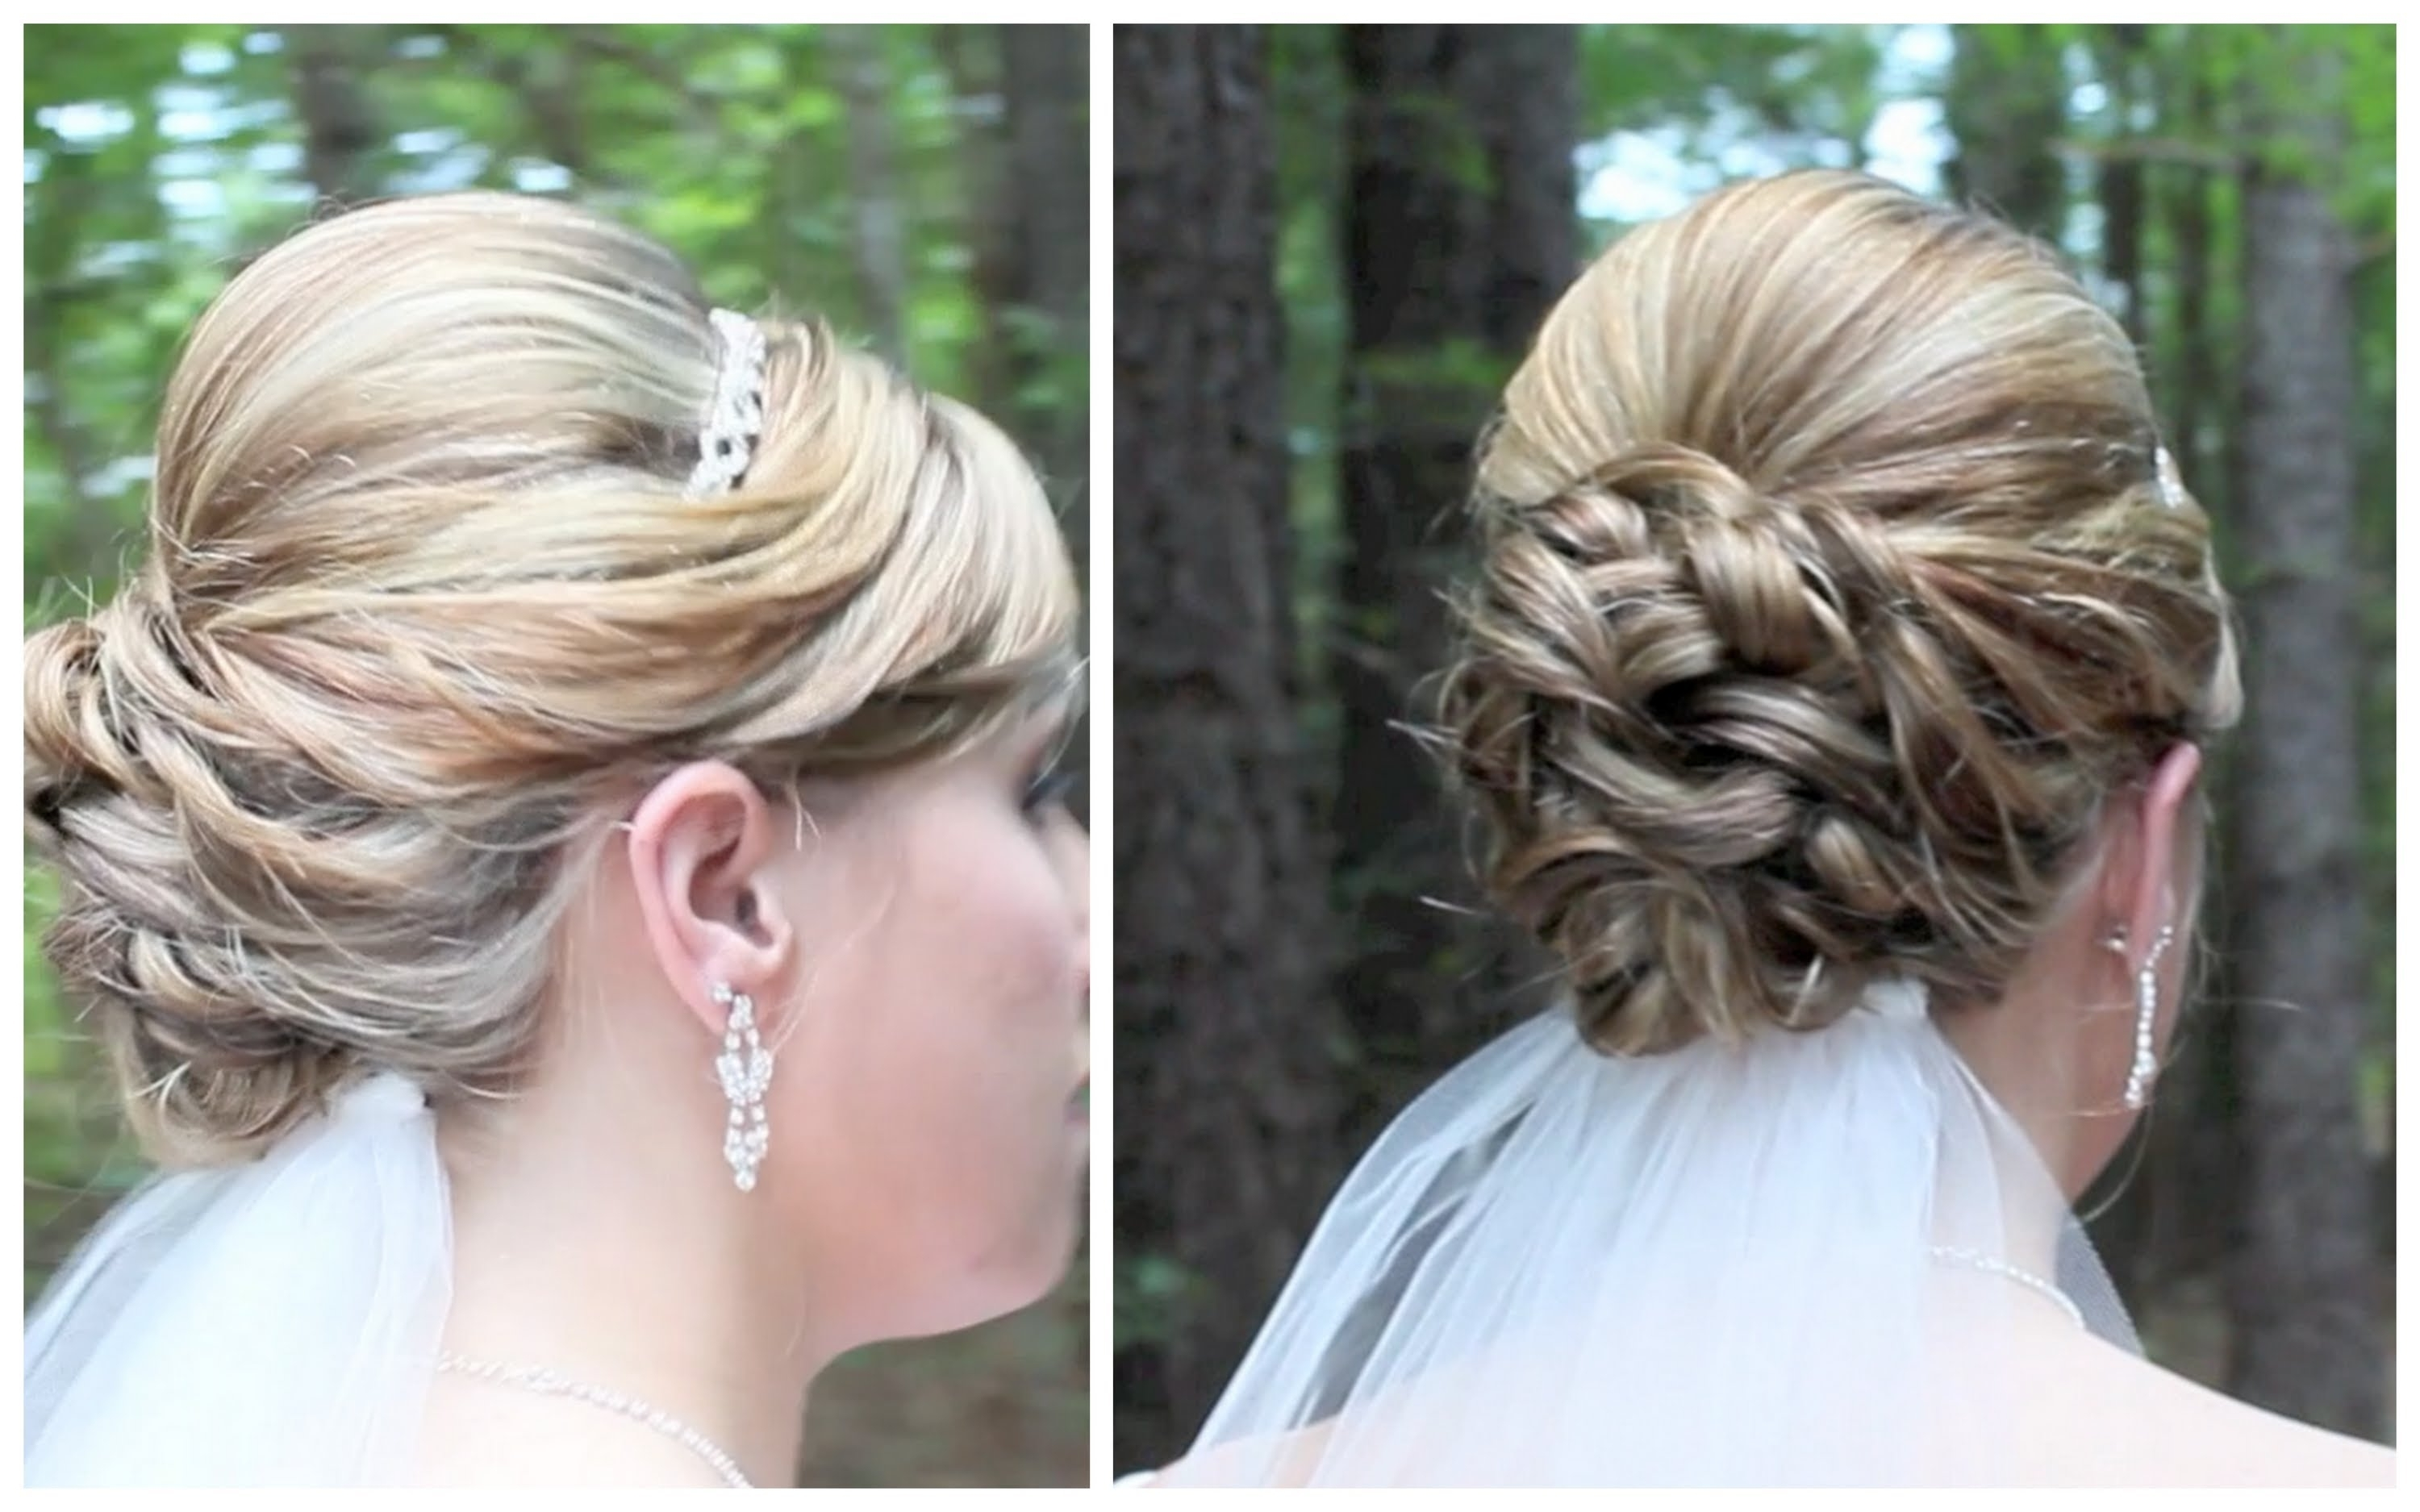 Well Known Put Up Wedding Hairstyles For Long Hair With Bridal Updo On Shoulder Length Hair – Youtube (View 13 of 15)